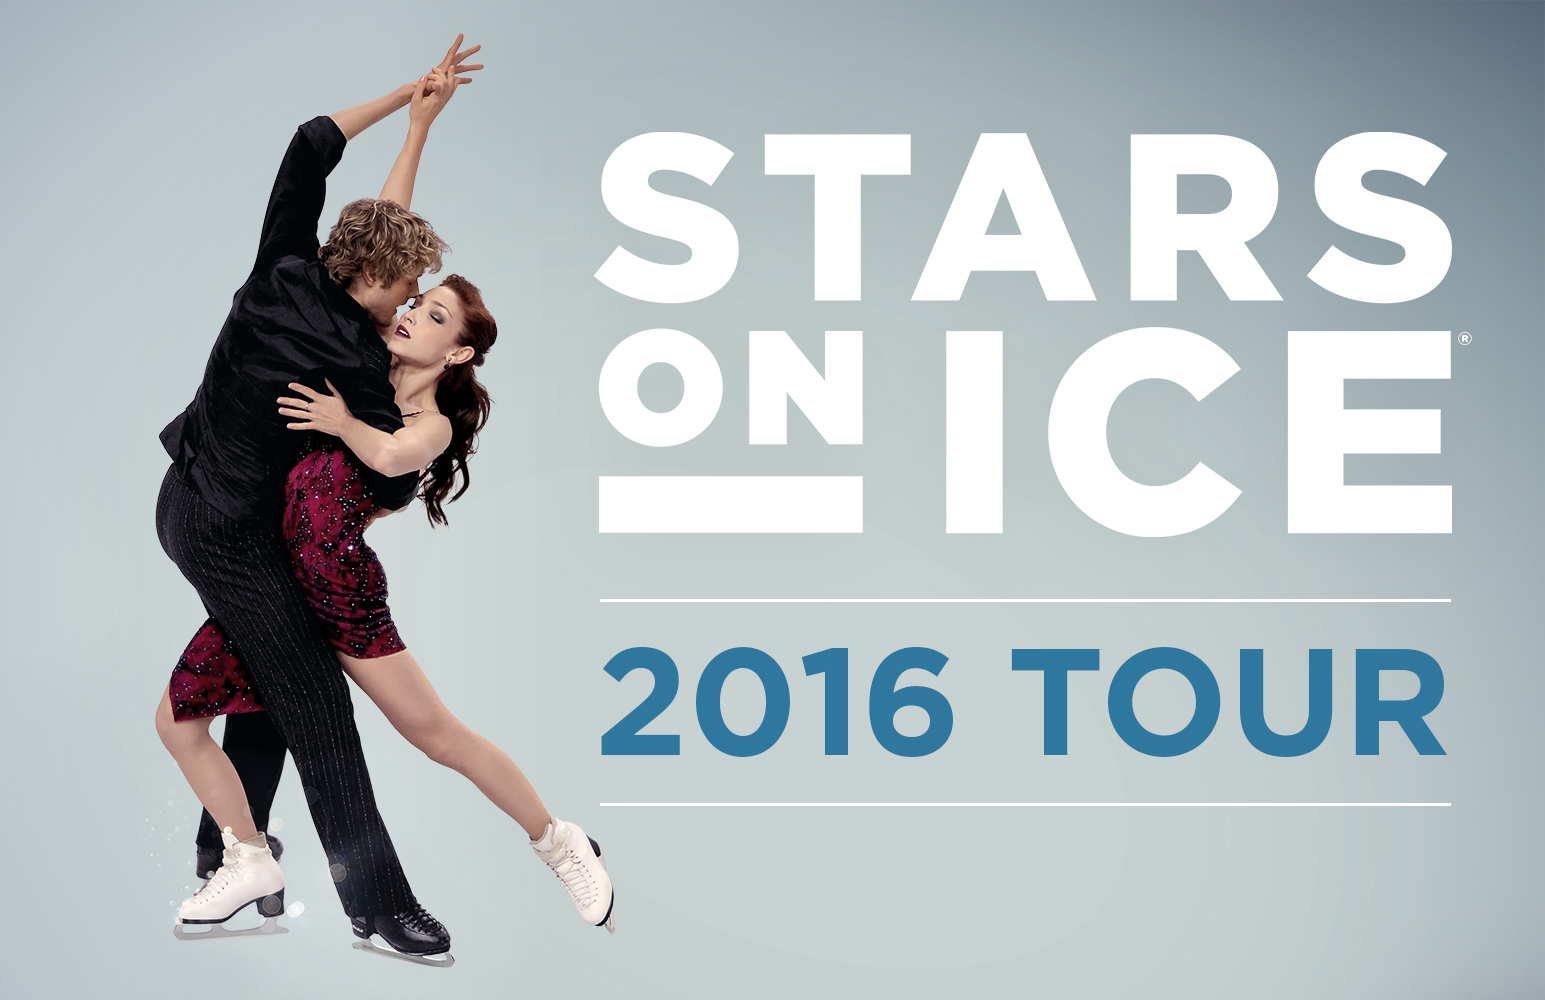 STARS ON ICE CAST ENJOYS SUCCESS AT WORLDS